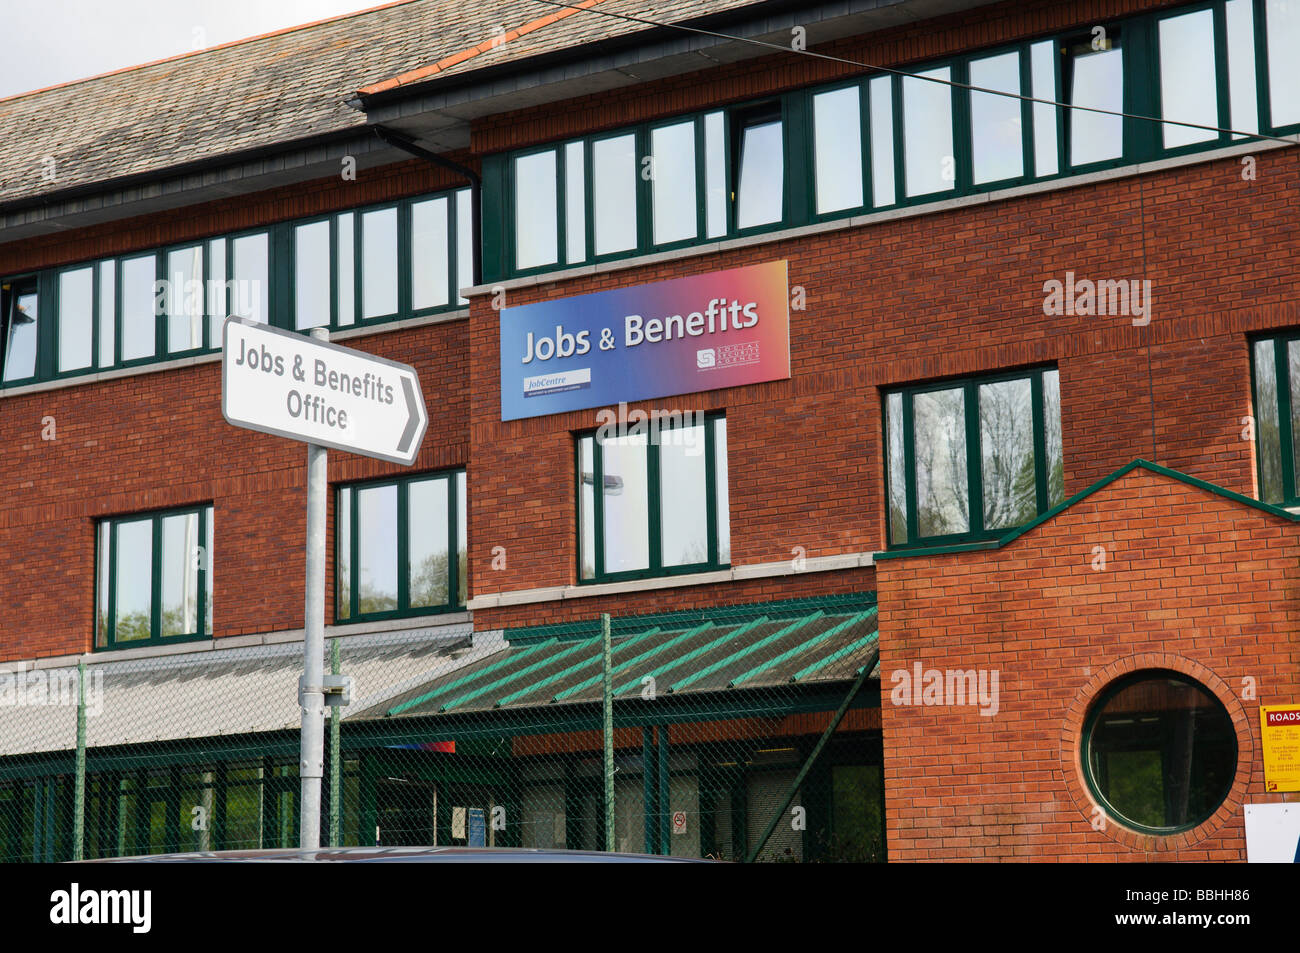 Road sign pointing to Jobs and Benefits Office in Antrim, Northern Ireland, UK - Stock Image